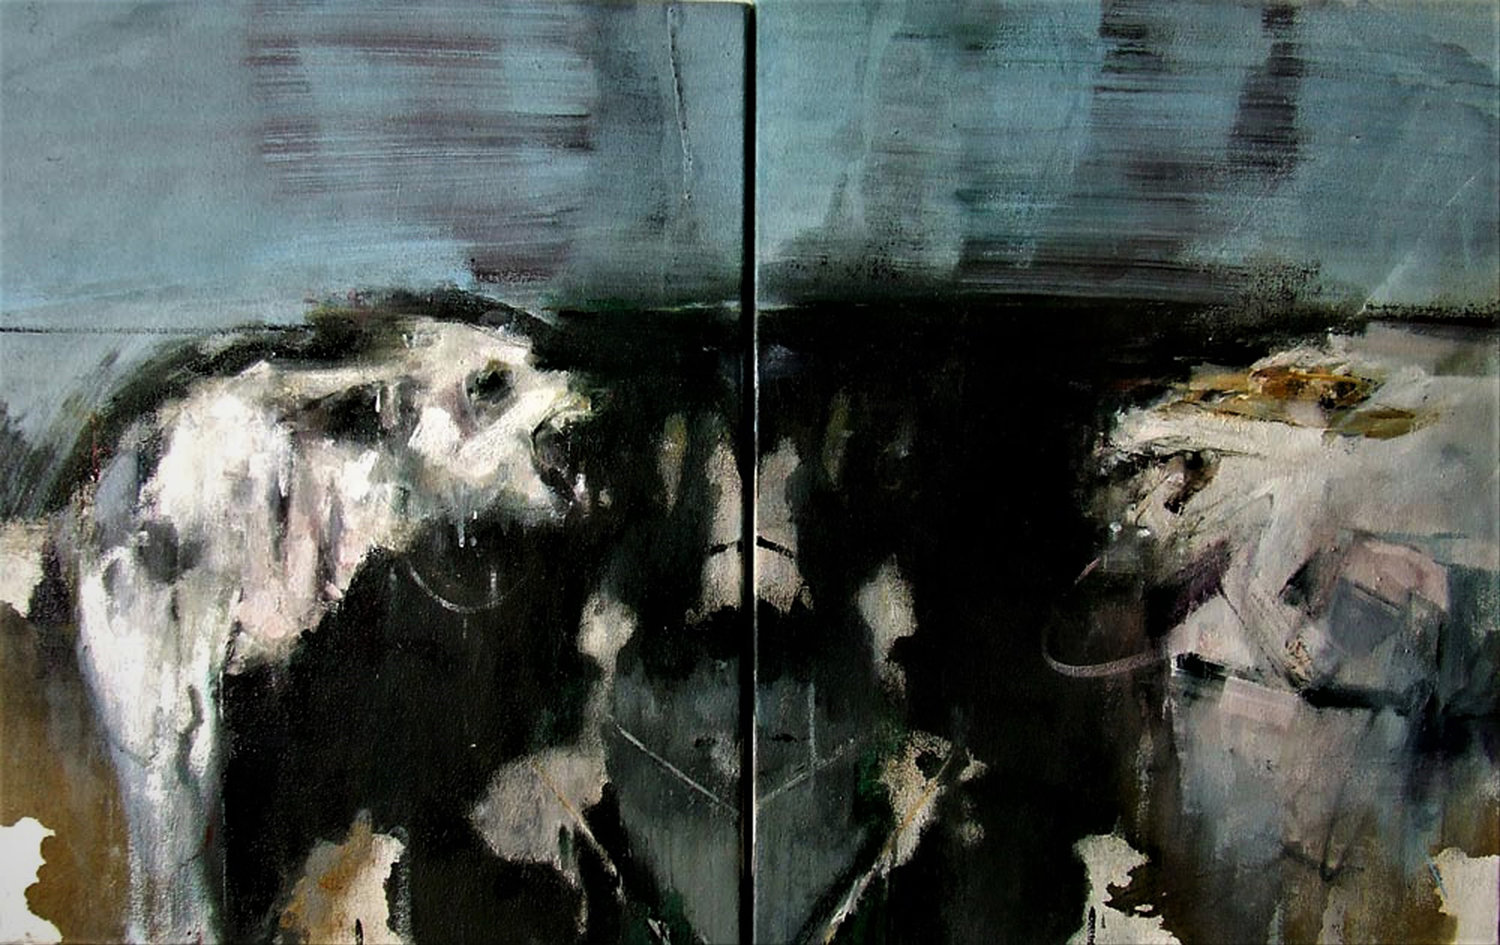 'Rorschach series - Selfie', Sarah Shaw, Diptych - Oil on canvas, 58 x 94 x 5 cm